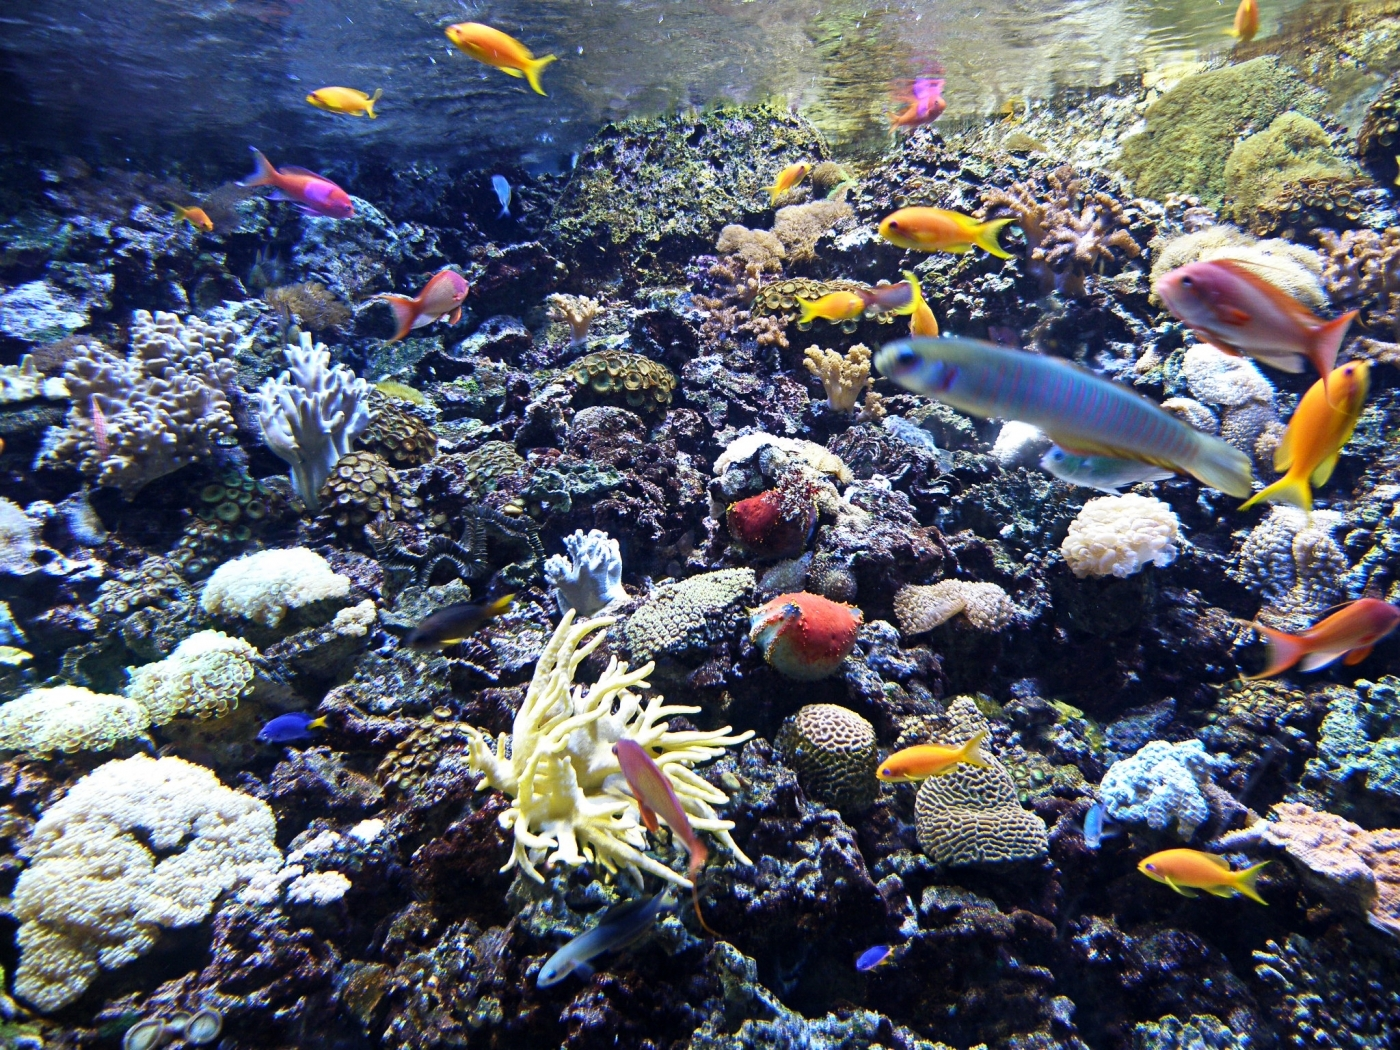 44329 download wallpaper Landscape, Sea, Fishes screensavers and pictures for free